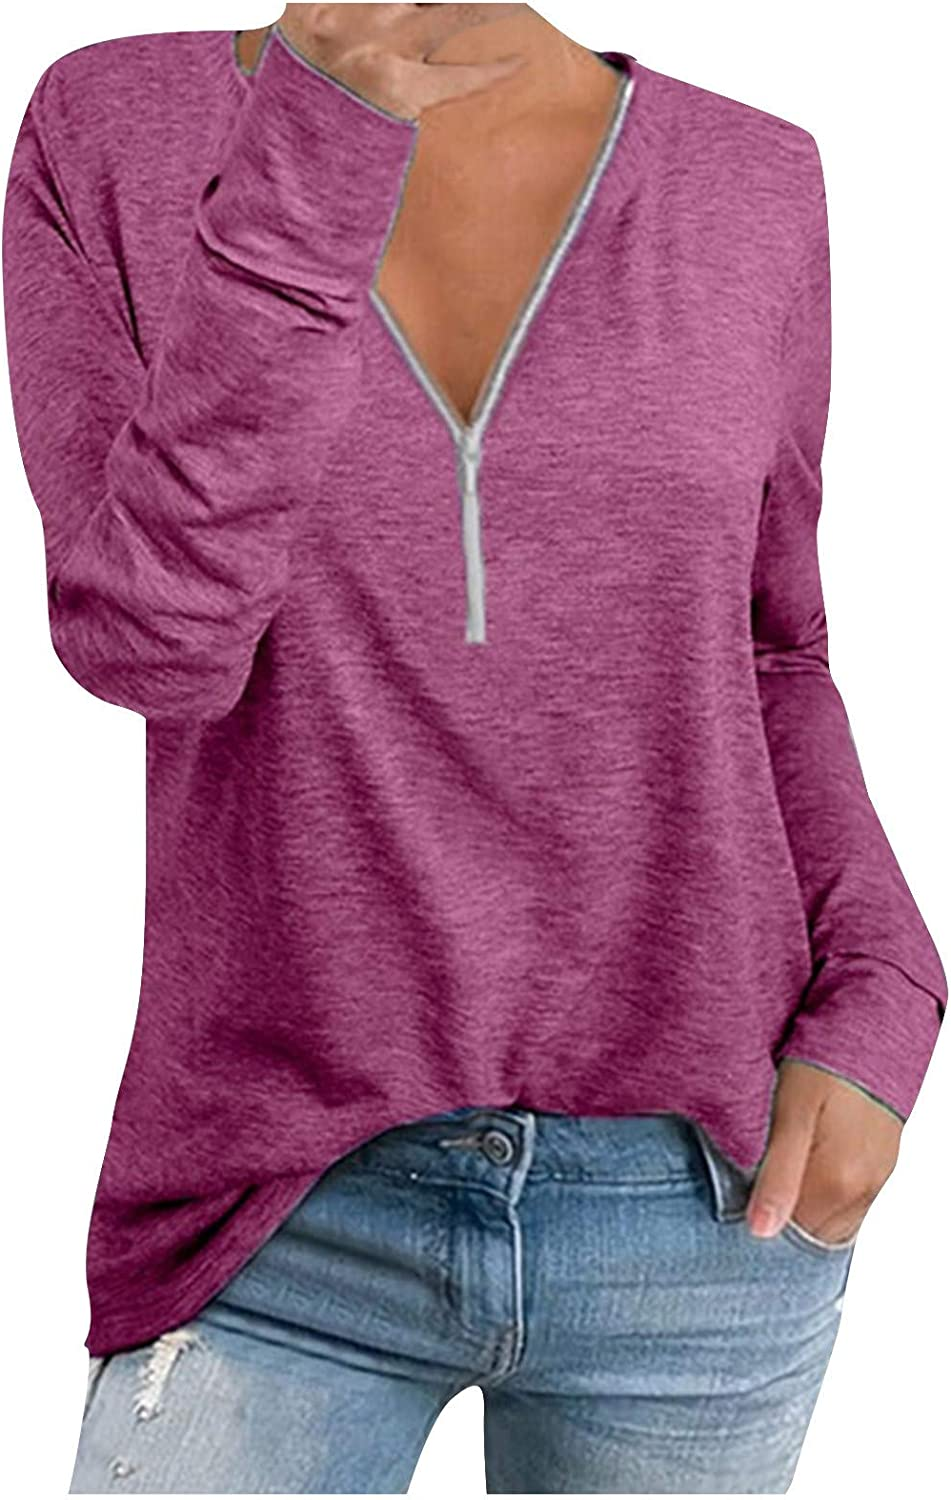 2021 Women/'s Casual Solid Color Long Sleeve V Neck Zip-Up Loose Pullover Tunic Blouse Tunic Tops